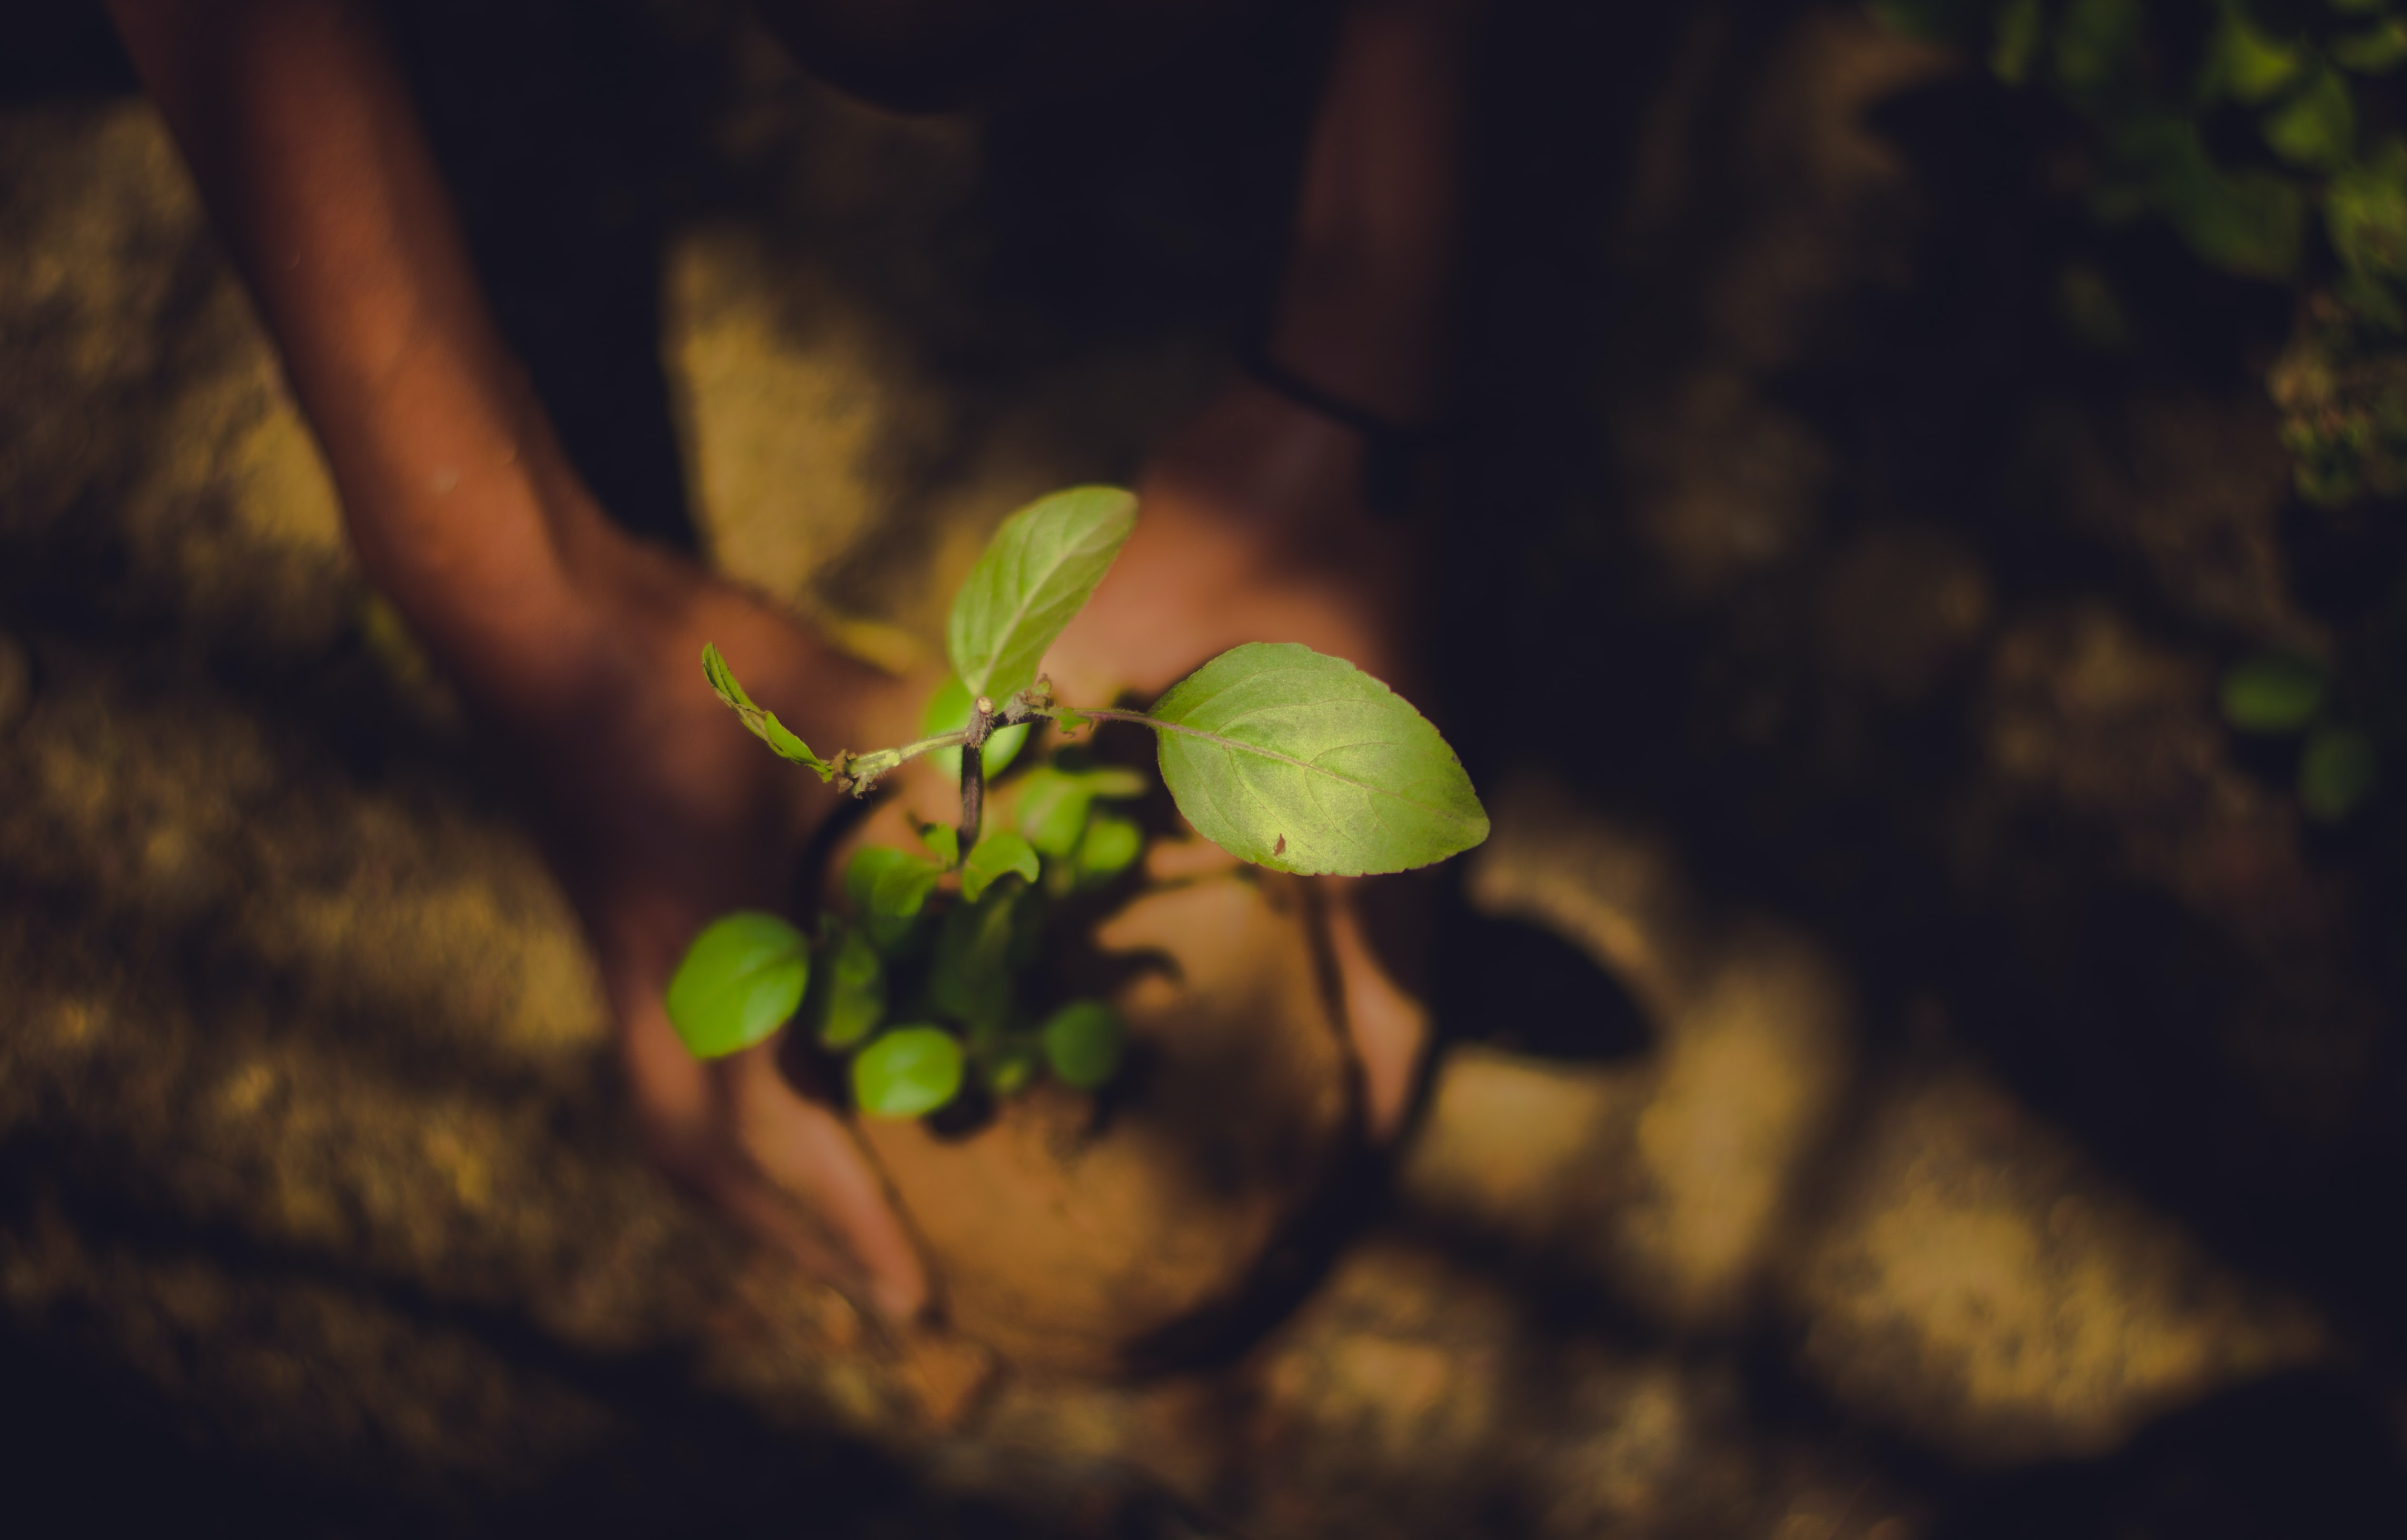 Does Planting Trees Really Offset Carbon?